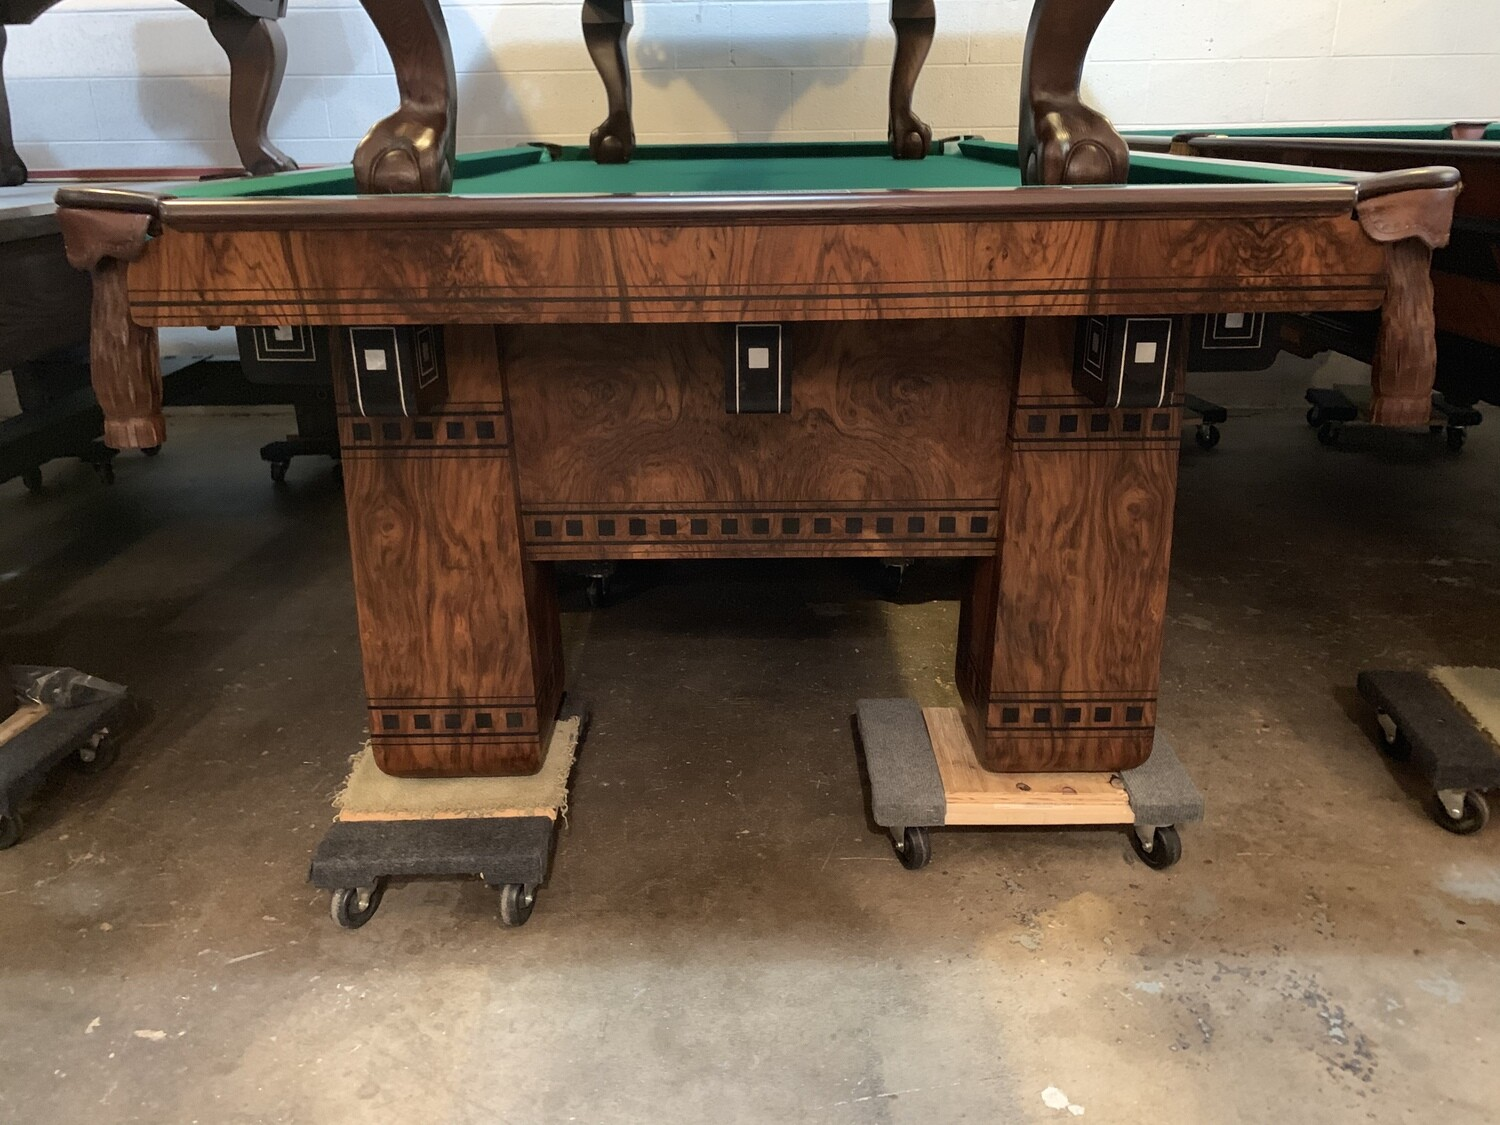 9' Brunswick Alexandria Pool Table - Circa early 1900's